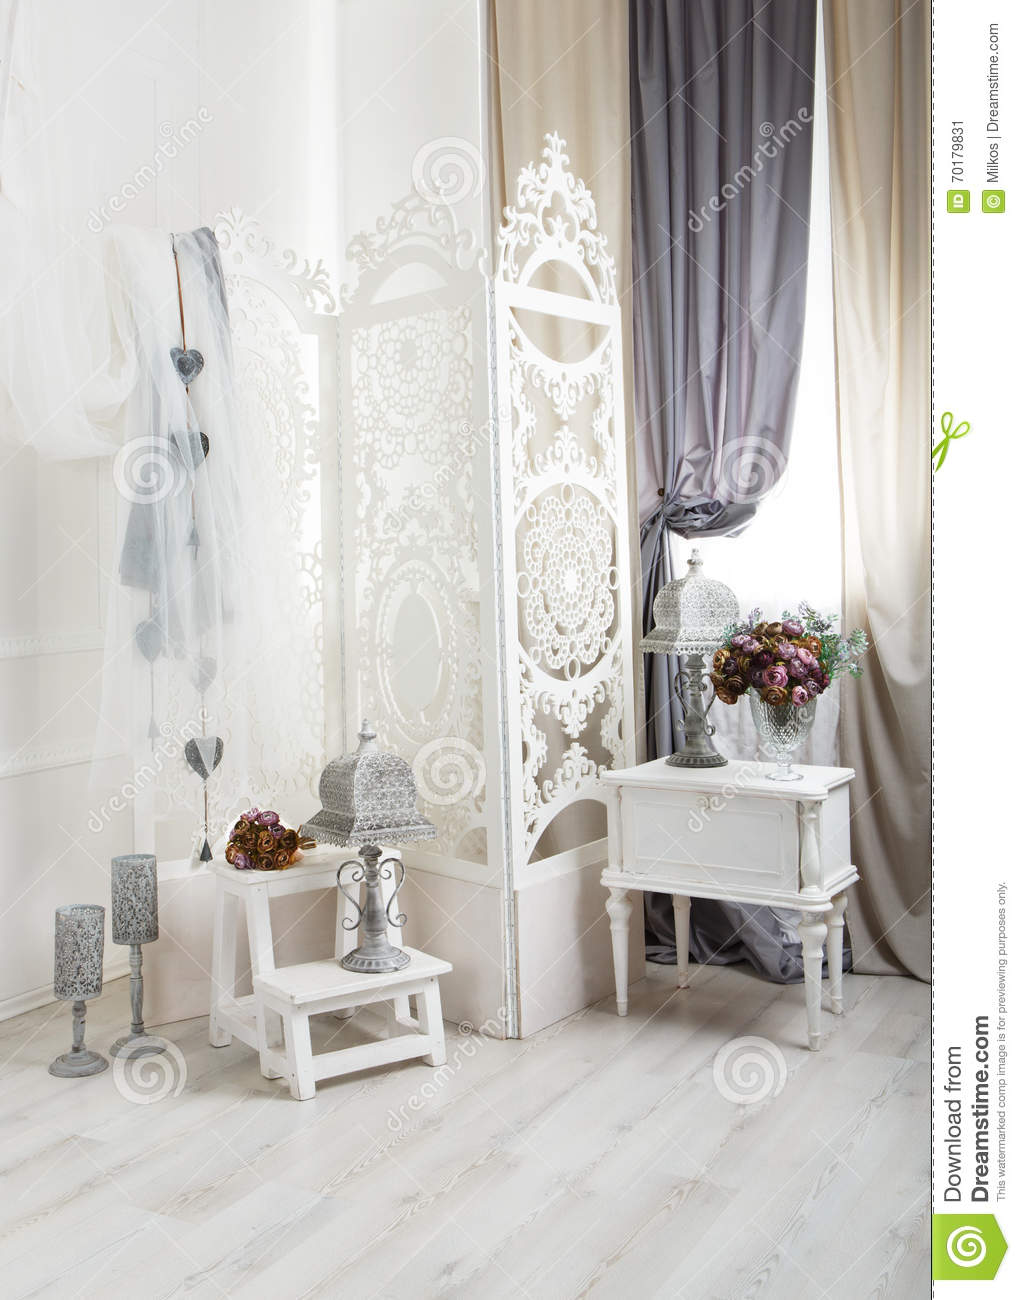 Shabby chic white room interior wedding decor stock image for Decoration interieur shabby chic